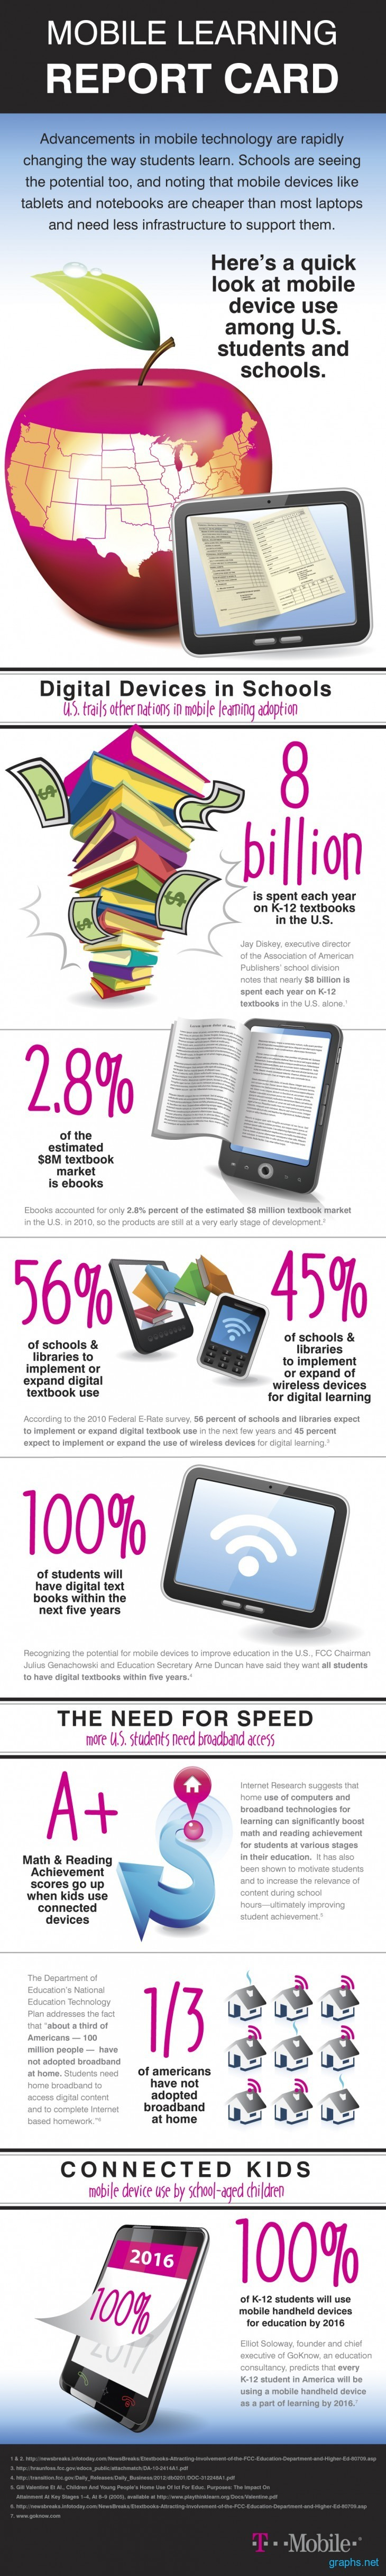 Digital Devices in Schools